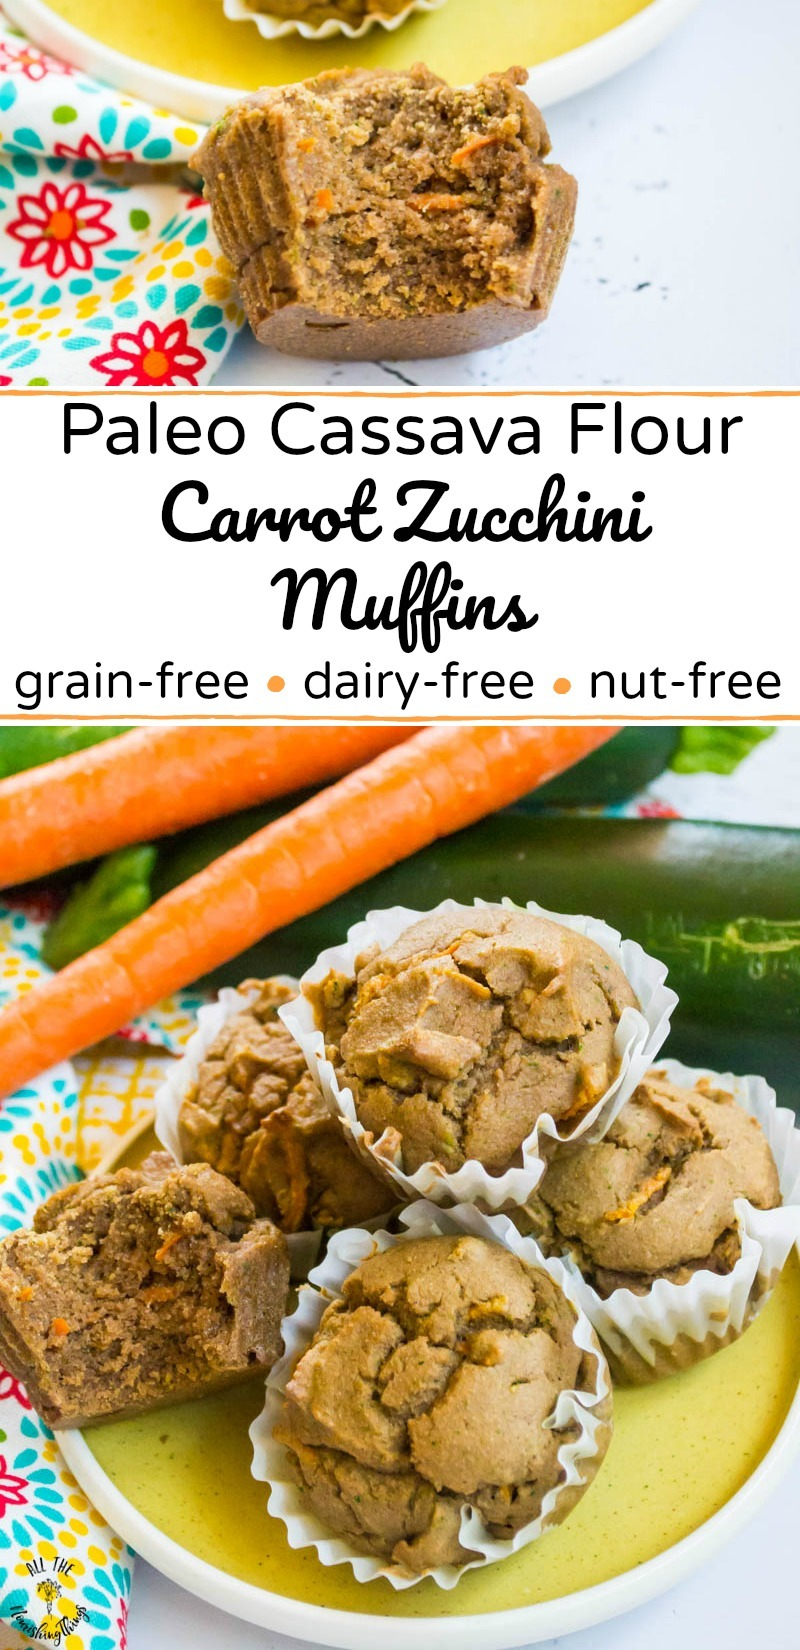 collage of photos of cassava flour paleo carrot zucchini muffins with text overlay between the images